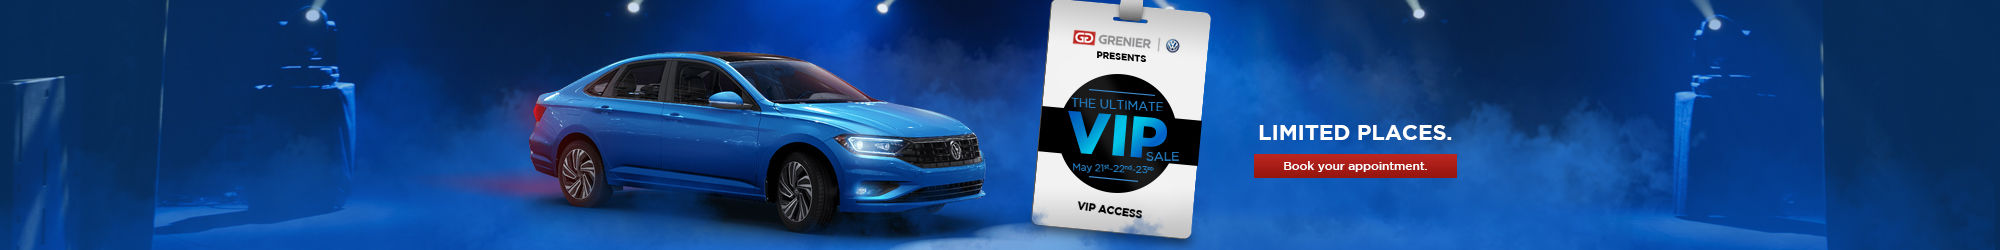 The ULTIMATE VIP SALE May 21-22-23